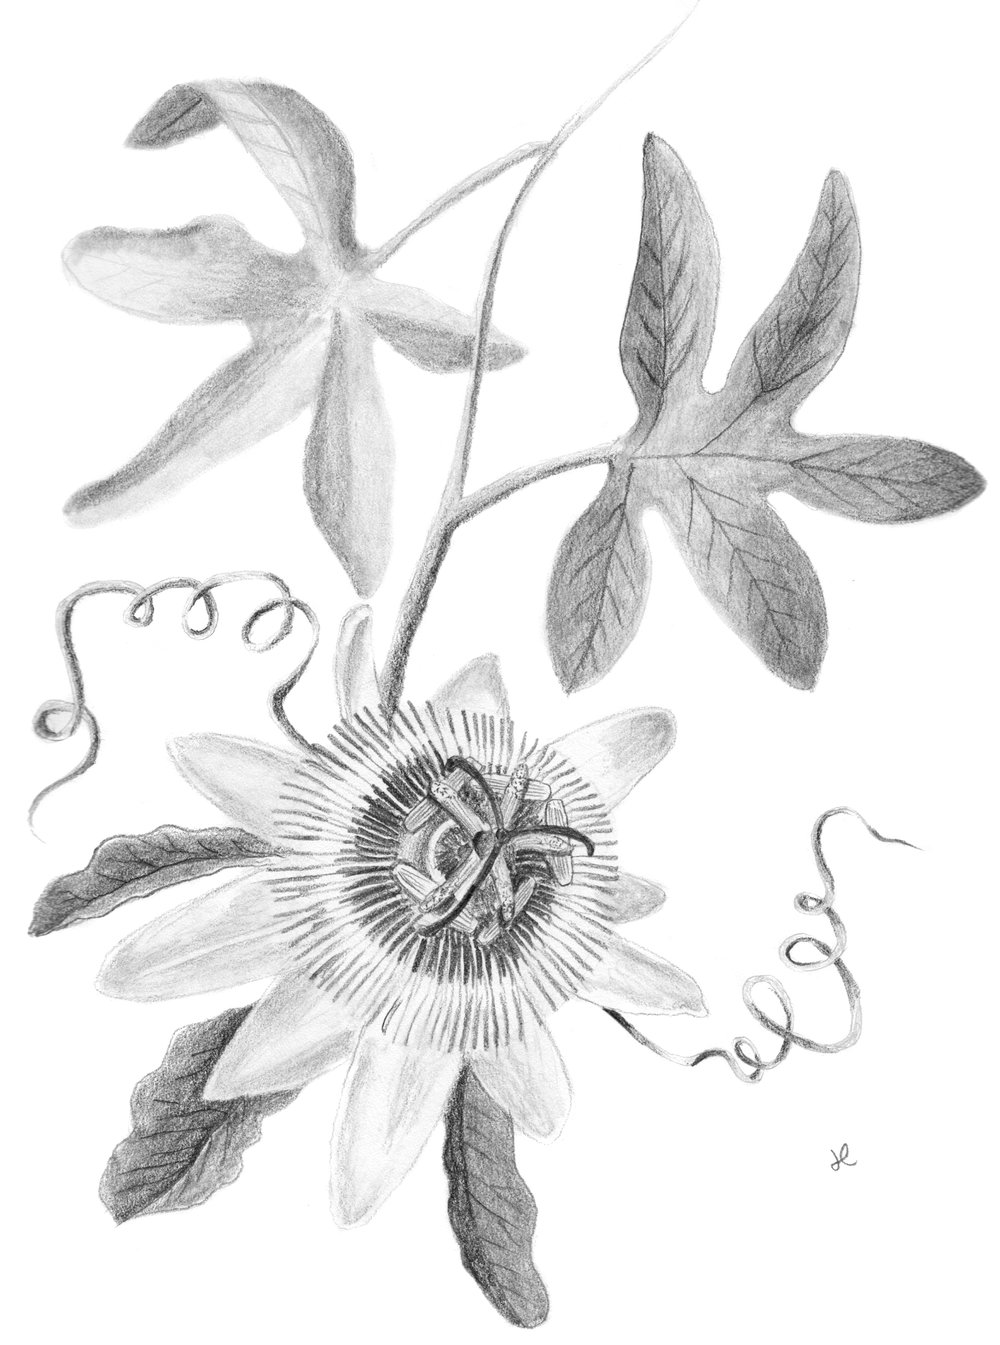 Passion Flower Final Drawing.jpeg